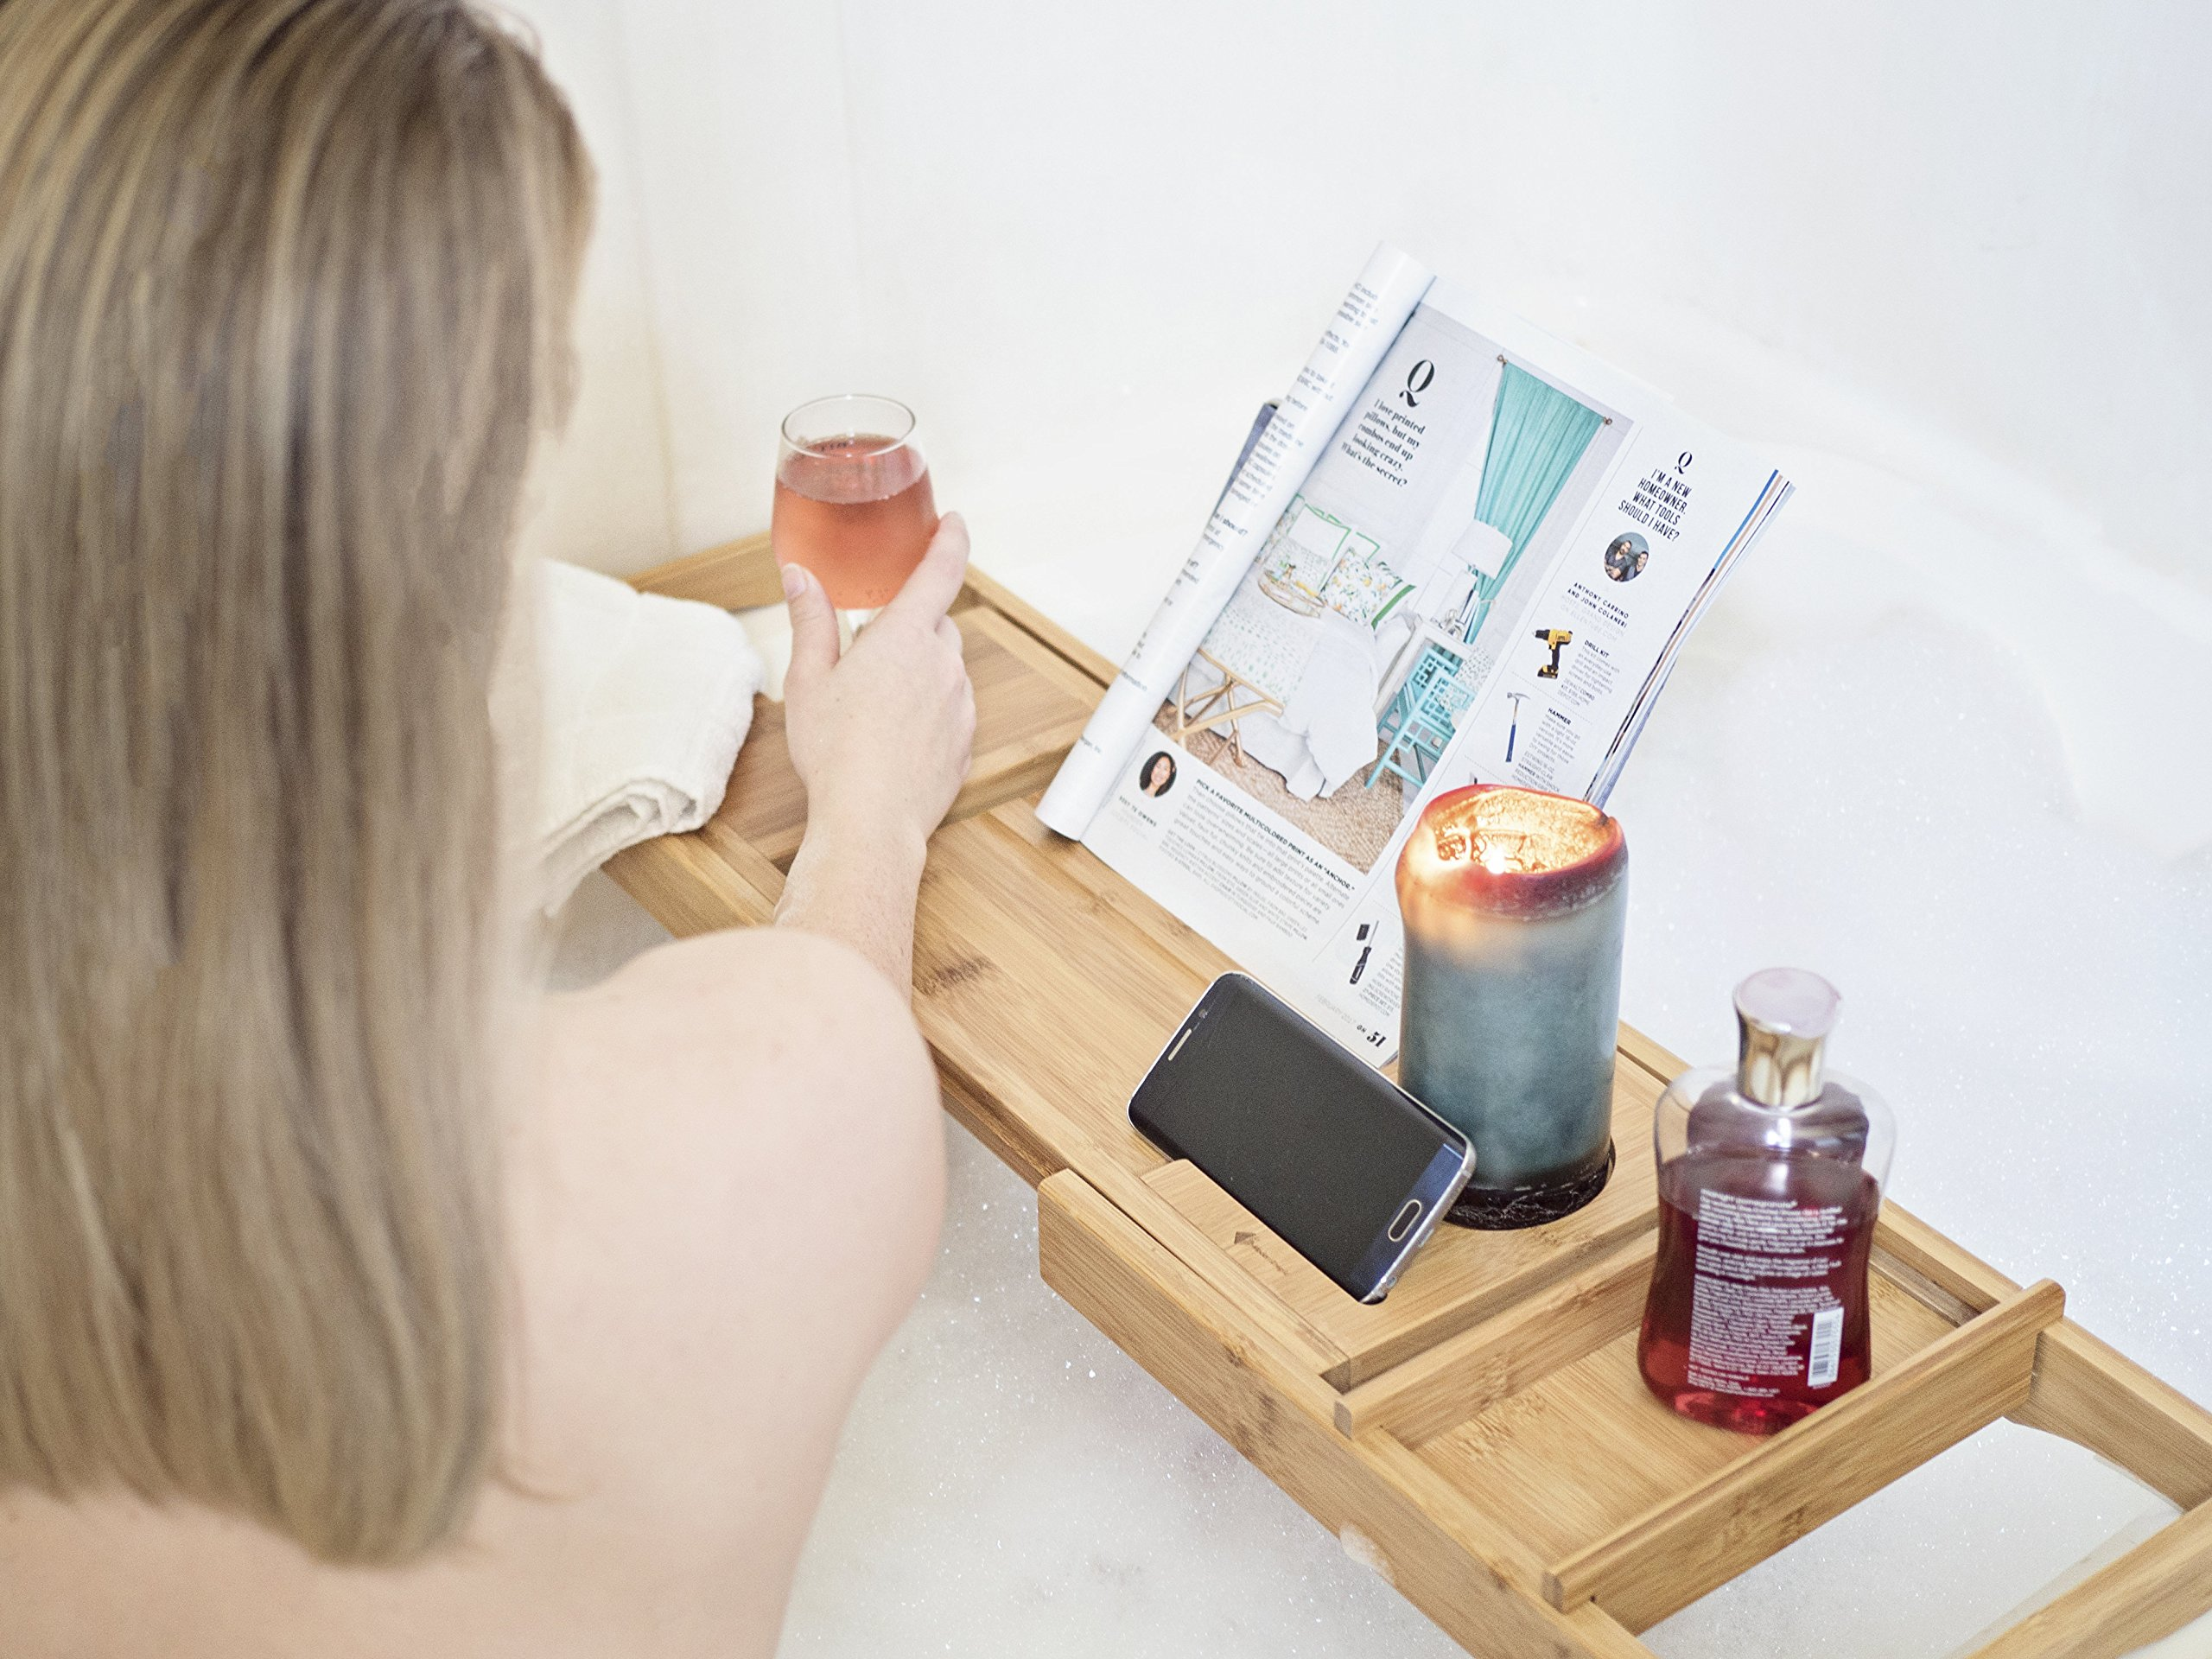 ModernTropic Home and Spa Bamboo Bathtub Caddy and Tray Expandable Non-Slip Wooden Bath Tray Securely Holds Drinks, Book/Tablet, Accessories, Phone by ModernTropic (Image #3)